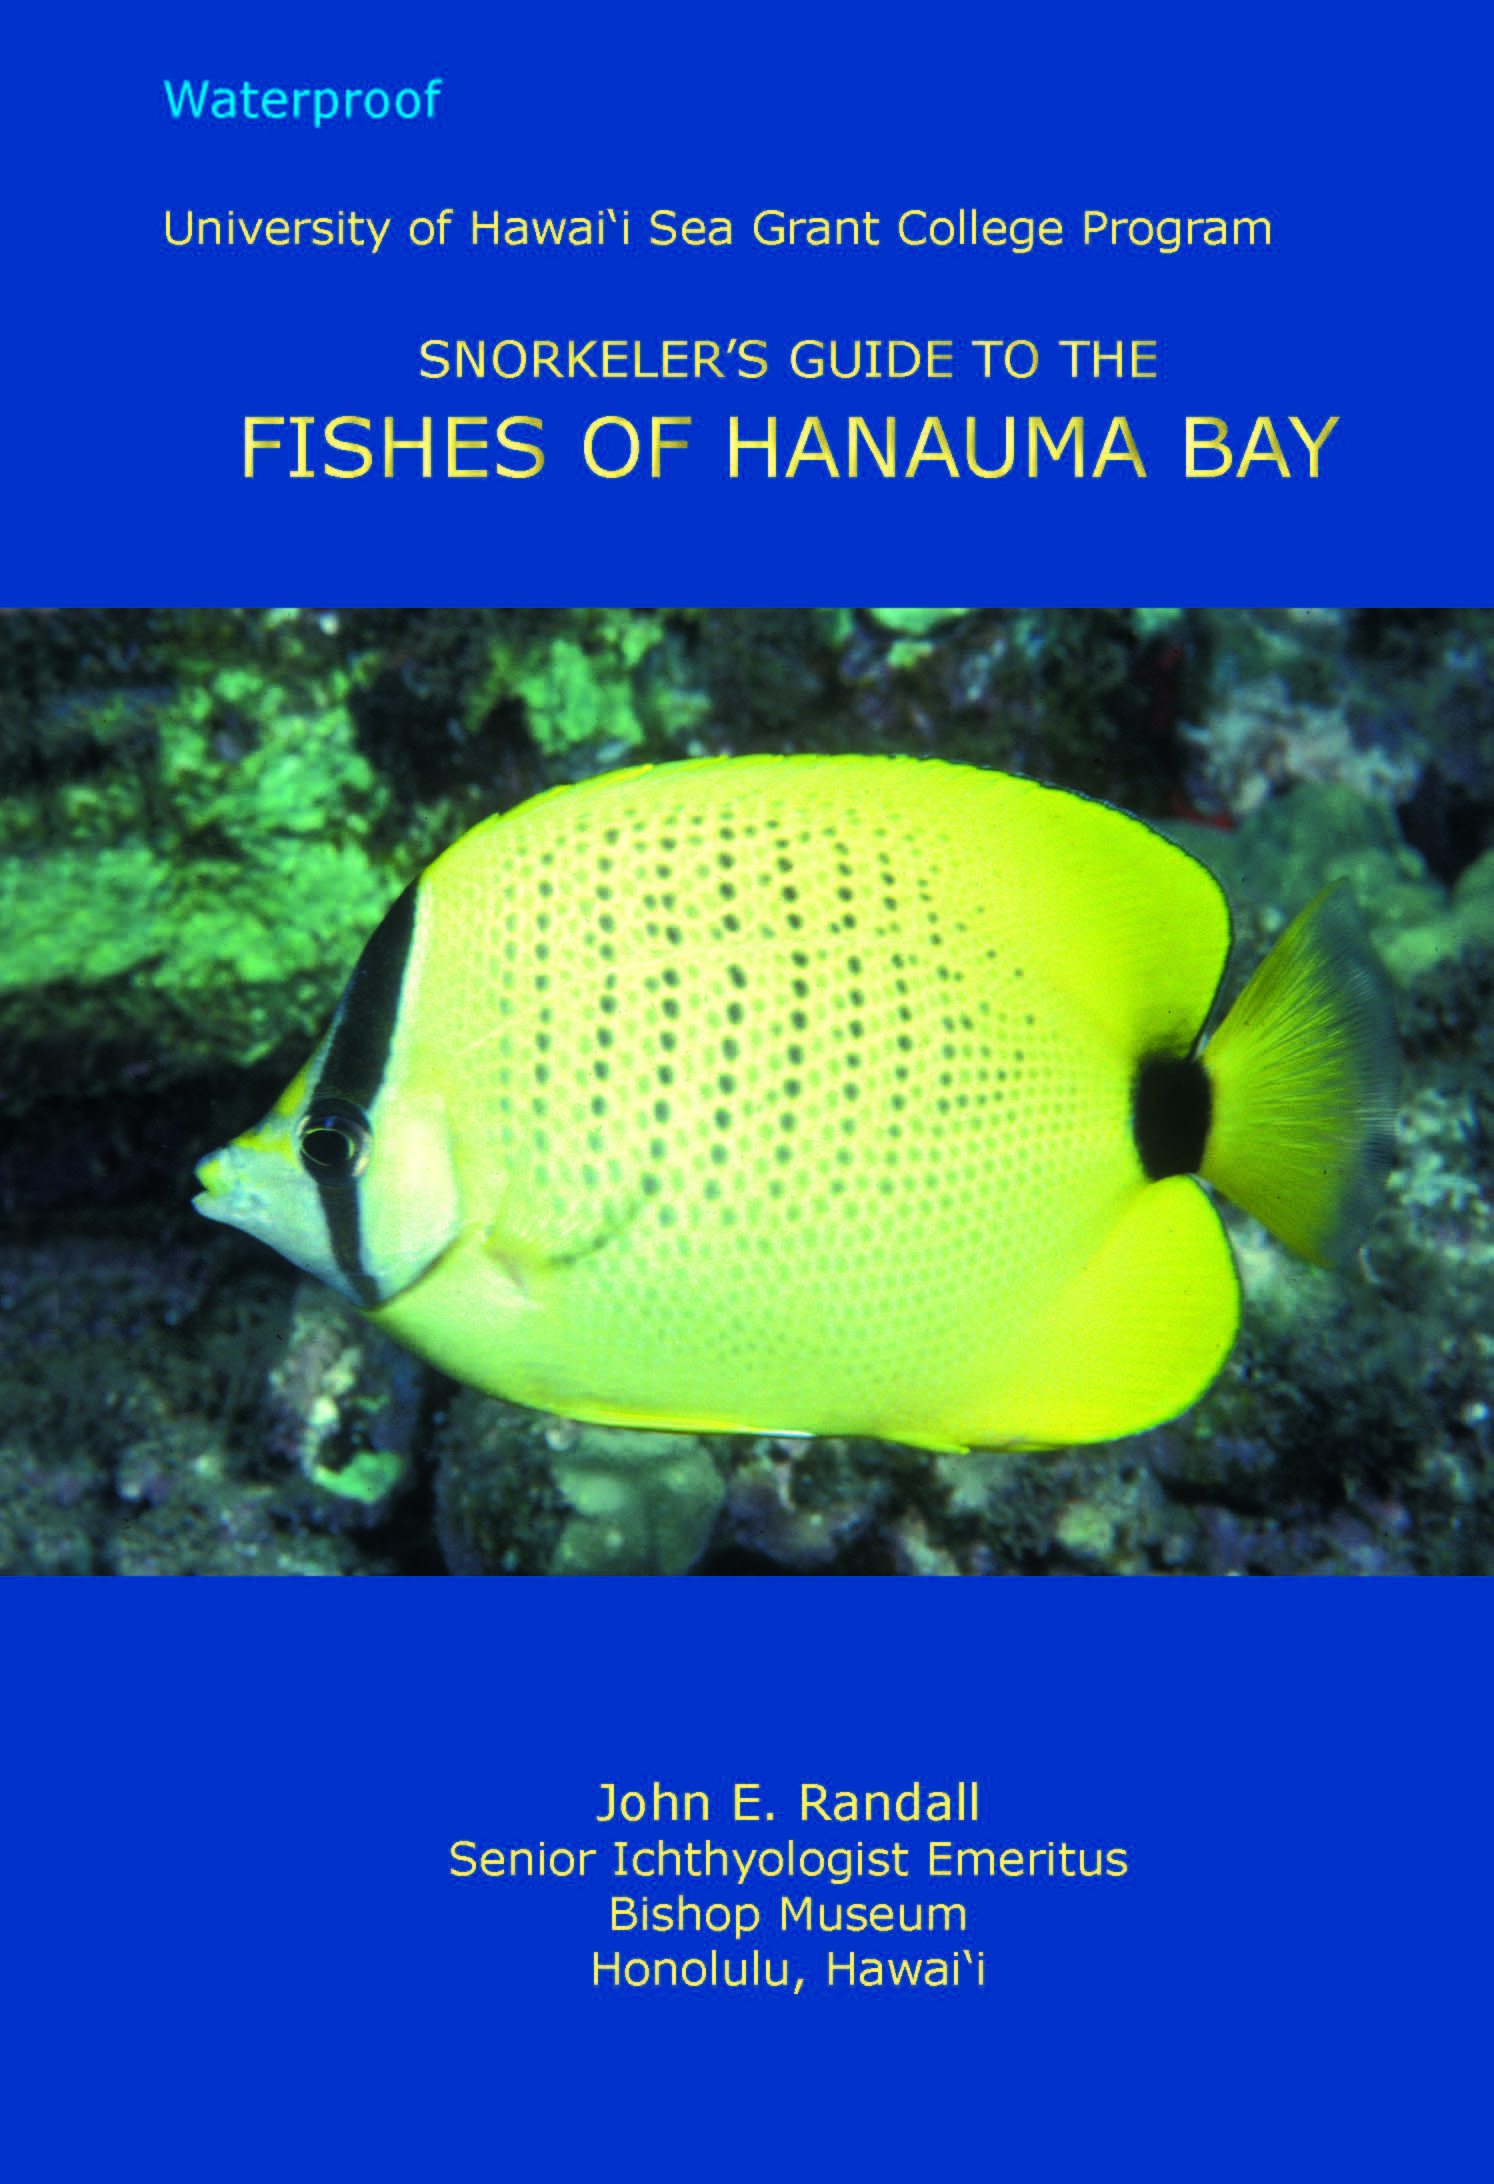 Cover of Snorkeler's Guide to the Fishes of Hanauma Bay